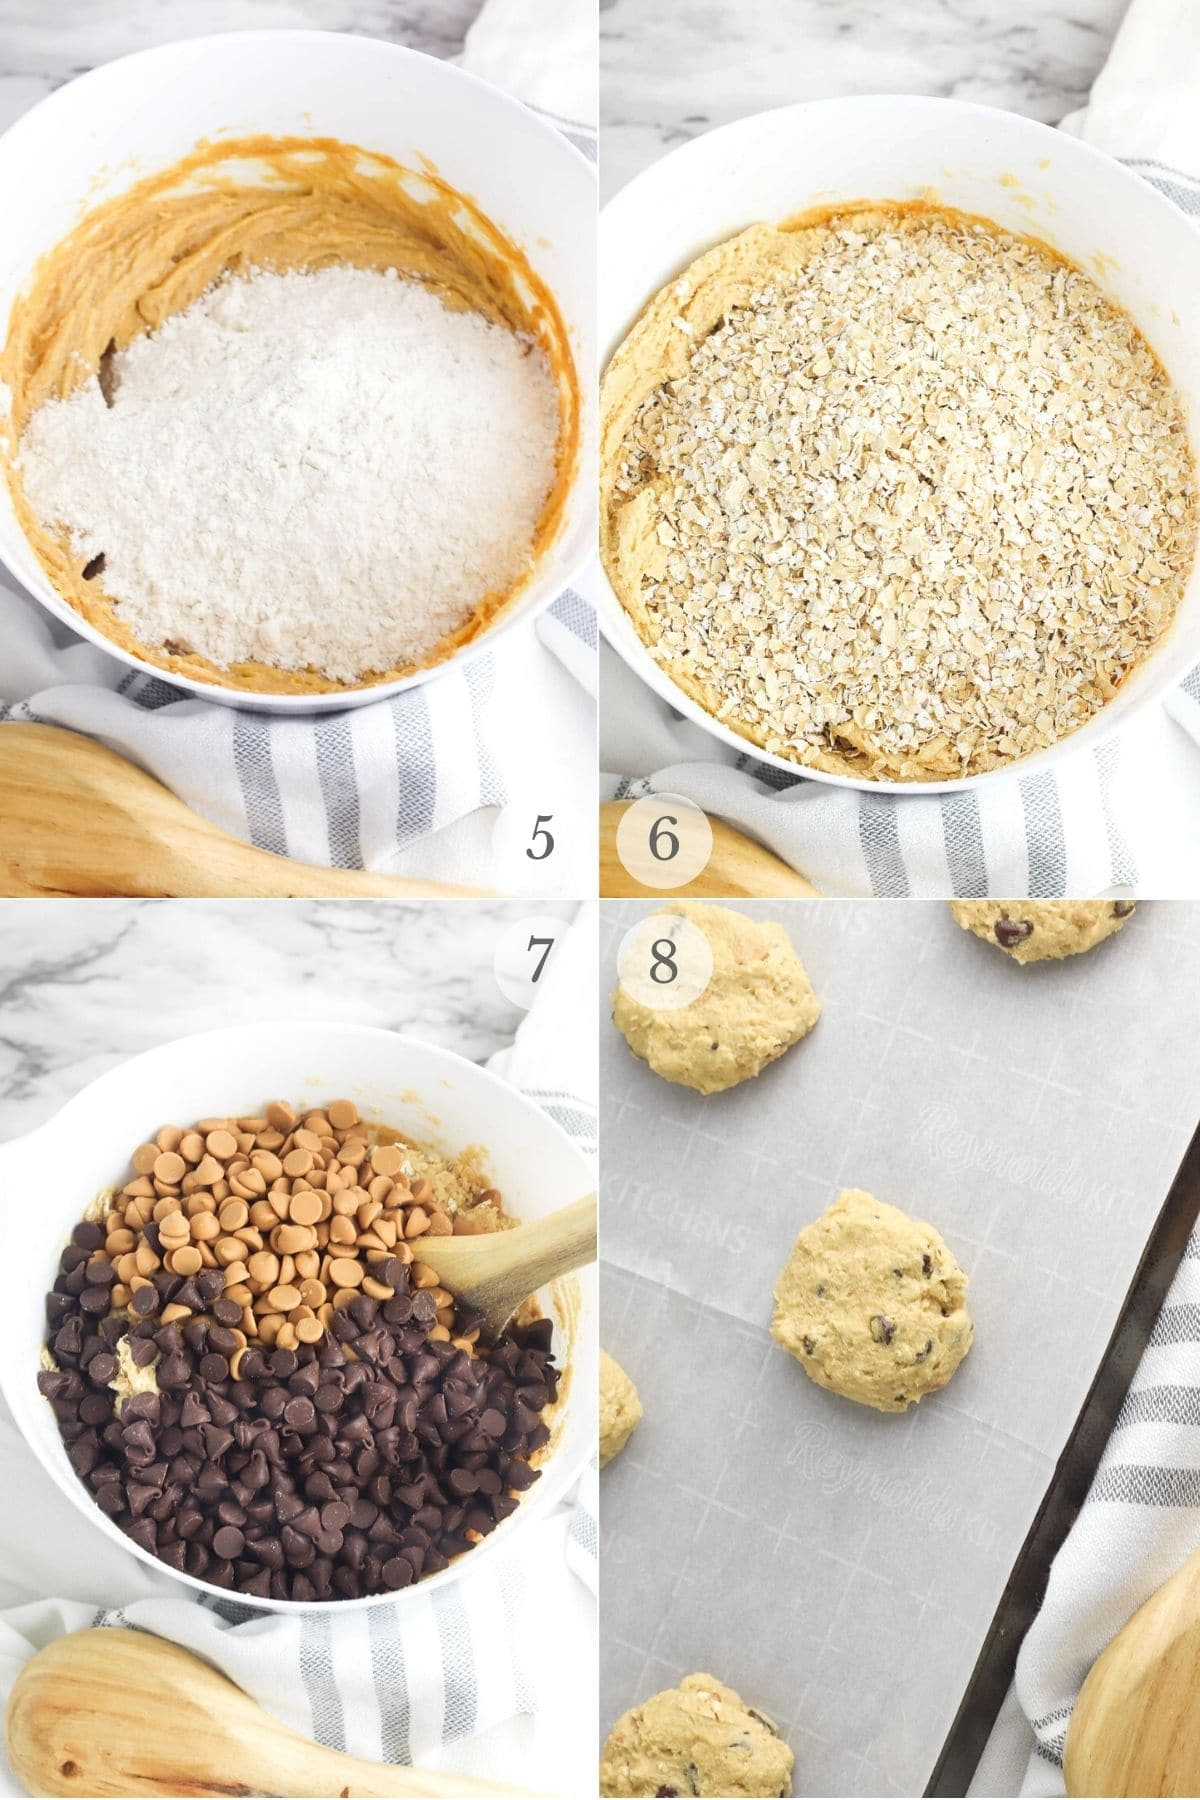 peanut butter chocolate chip cookies recipe steps 5-8